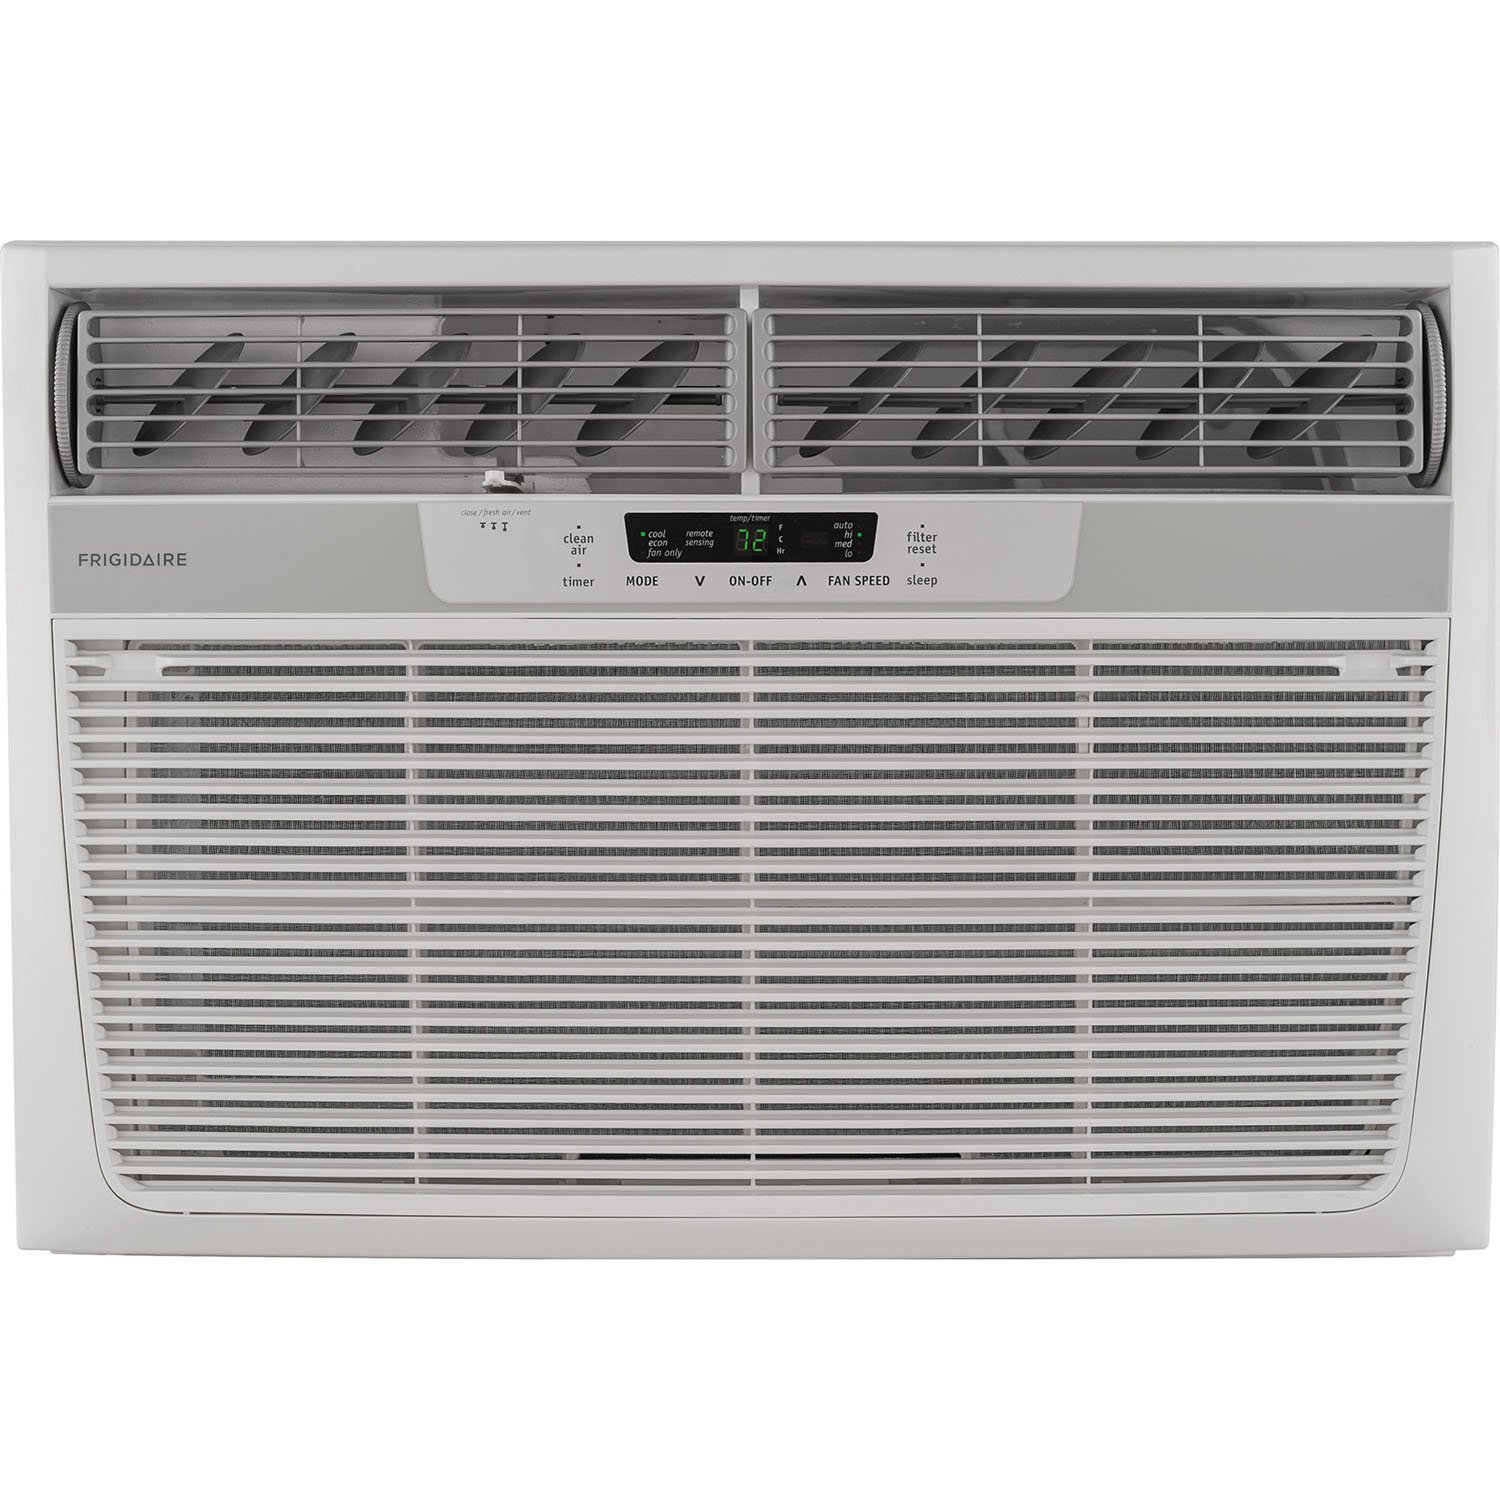 Frigidaire FFRA2822R2 28000 BTU 230-volt Window-Mounted Heavy-Duty Air Conditioner with Temperature Sensing Remote Control